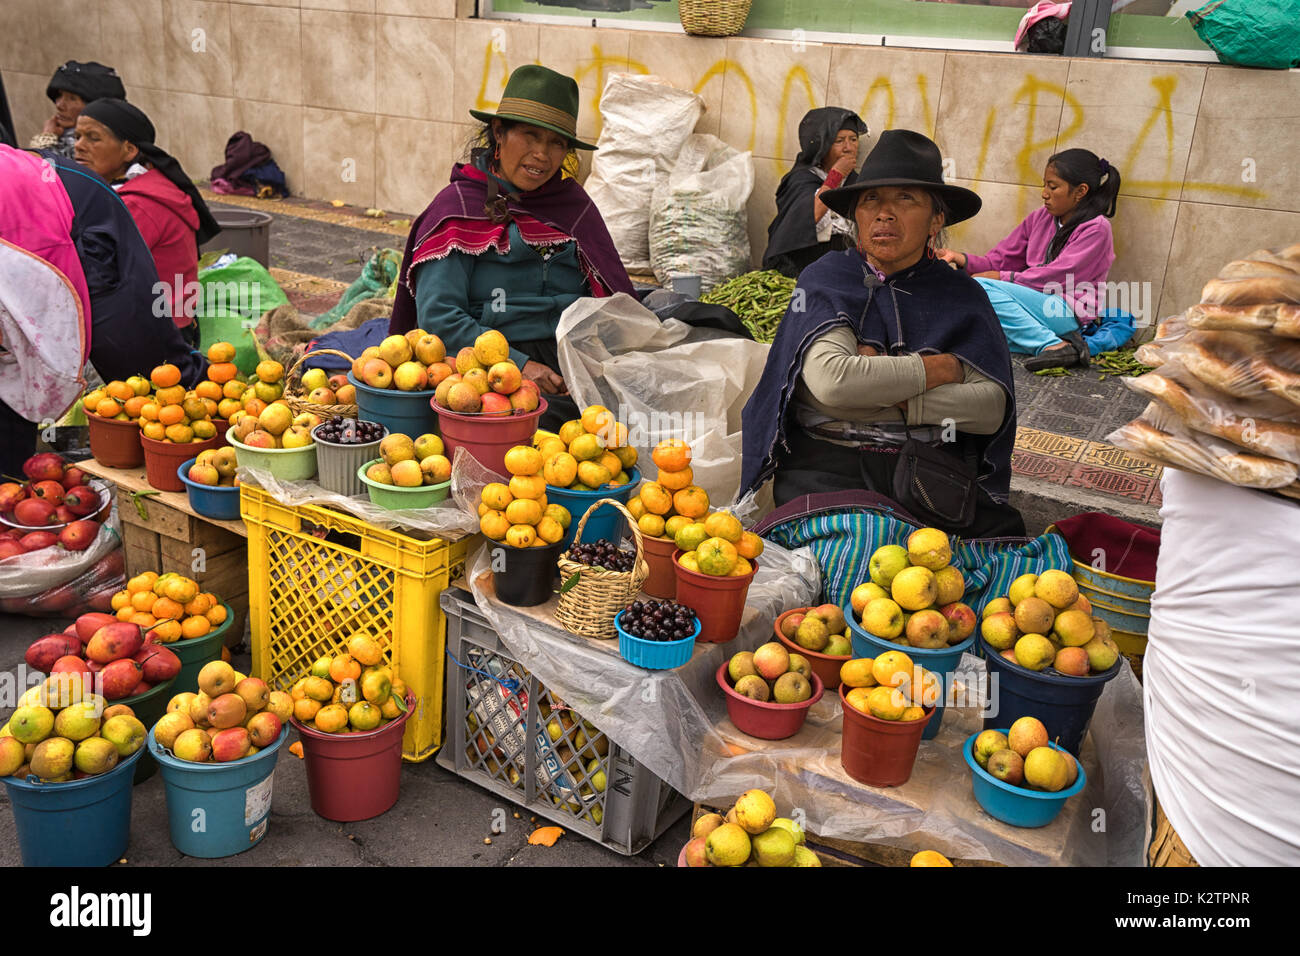 May 6, 2017 Otavalo, Ecuador: indigenous produce vendors in the Saturday market - Stock Image